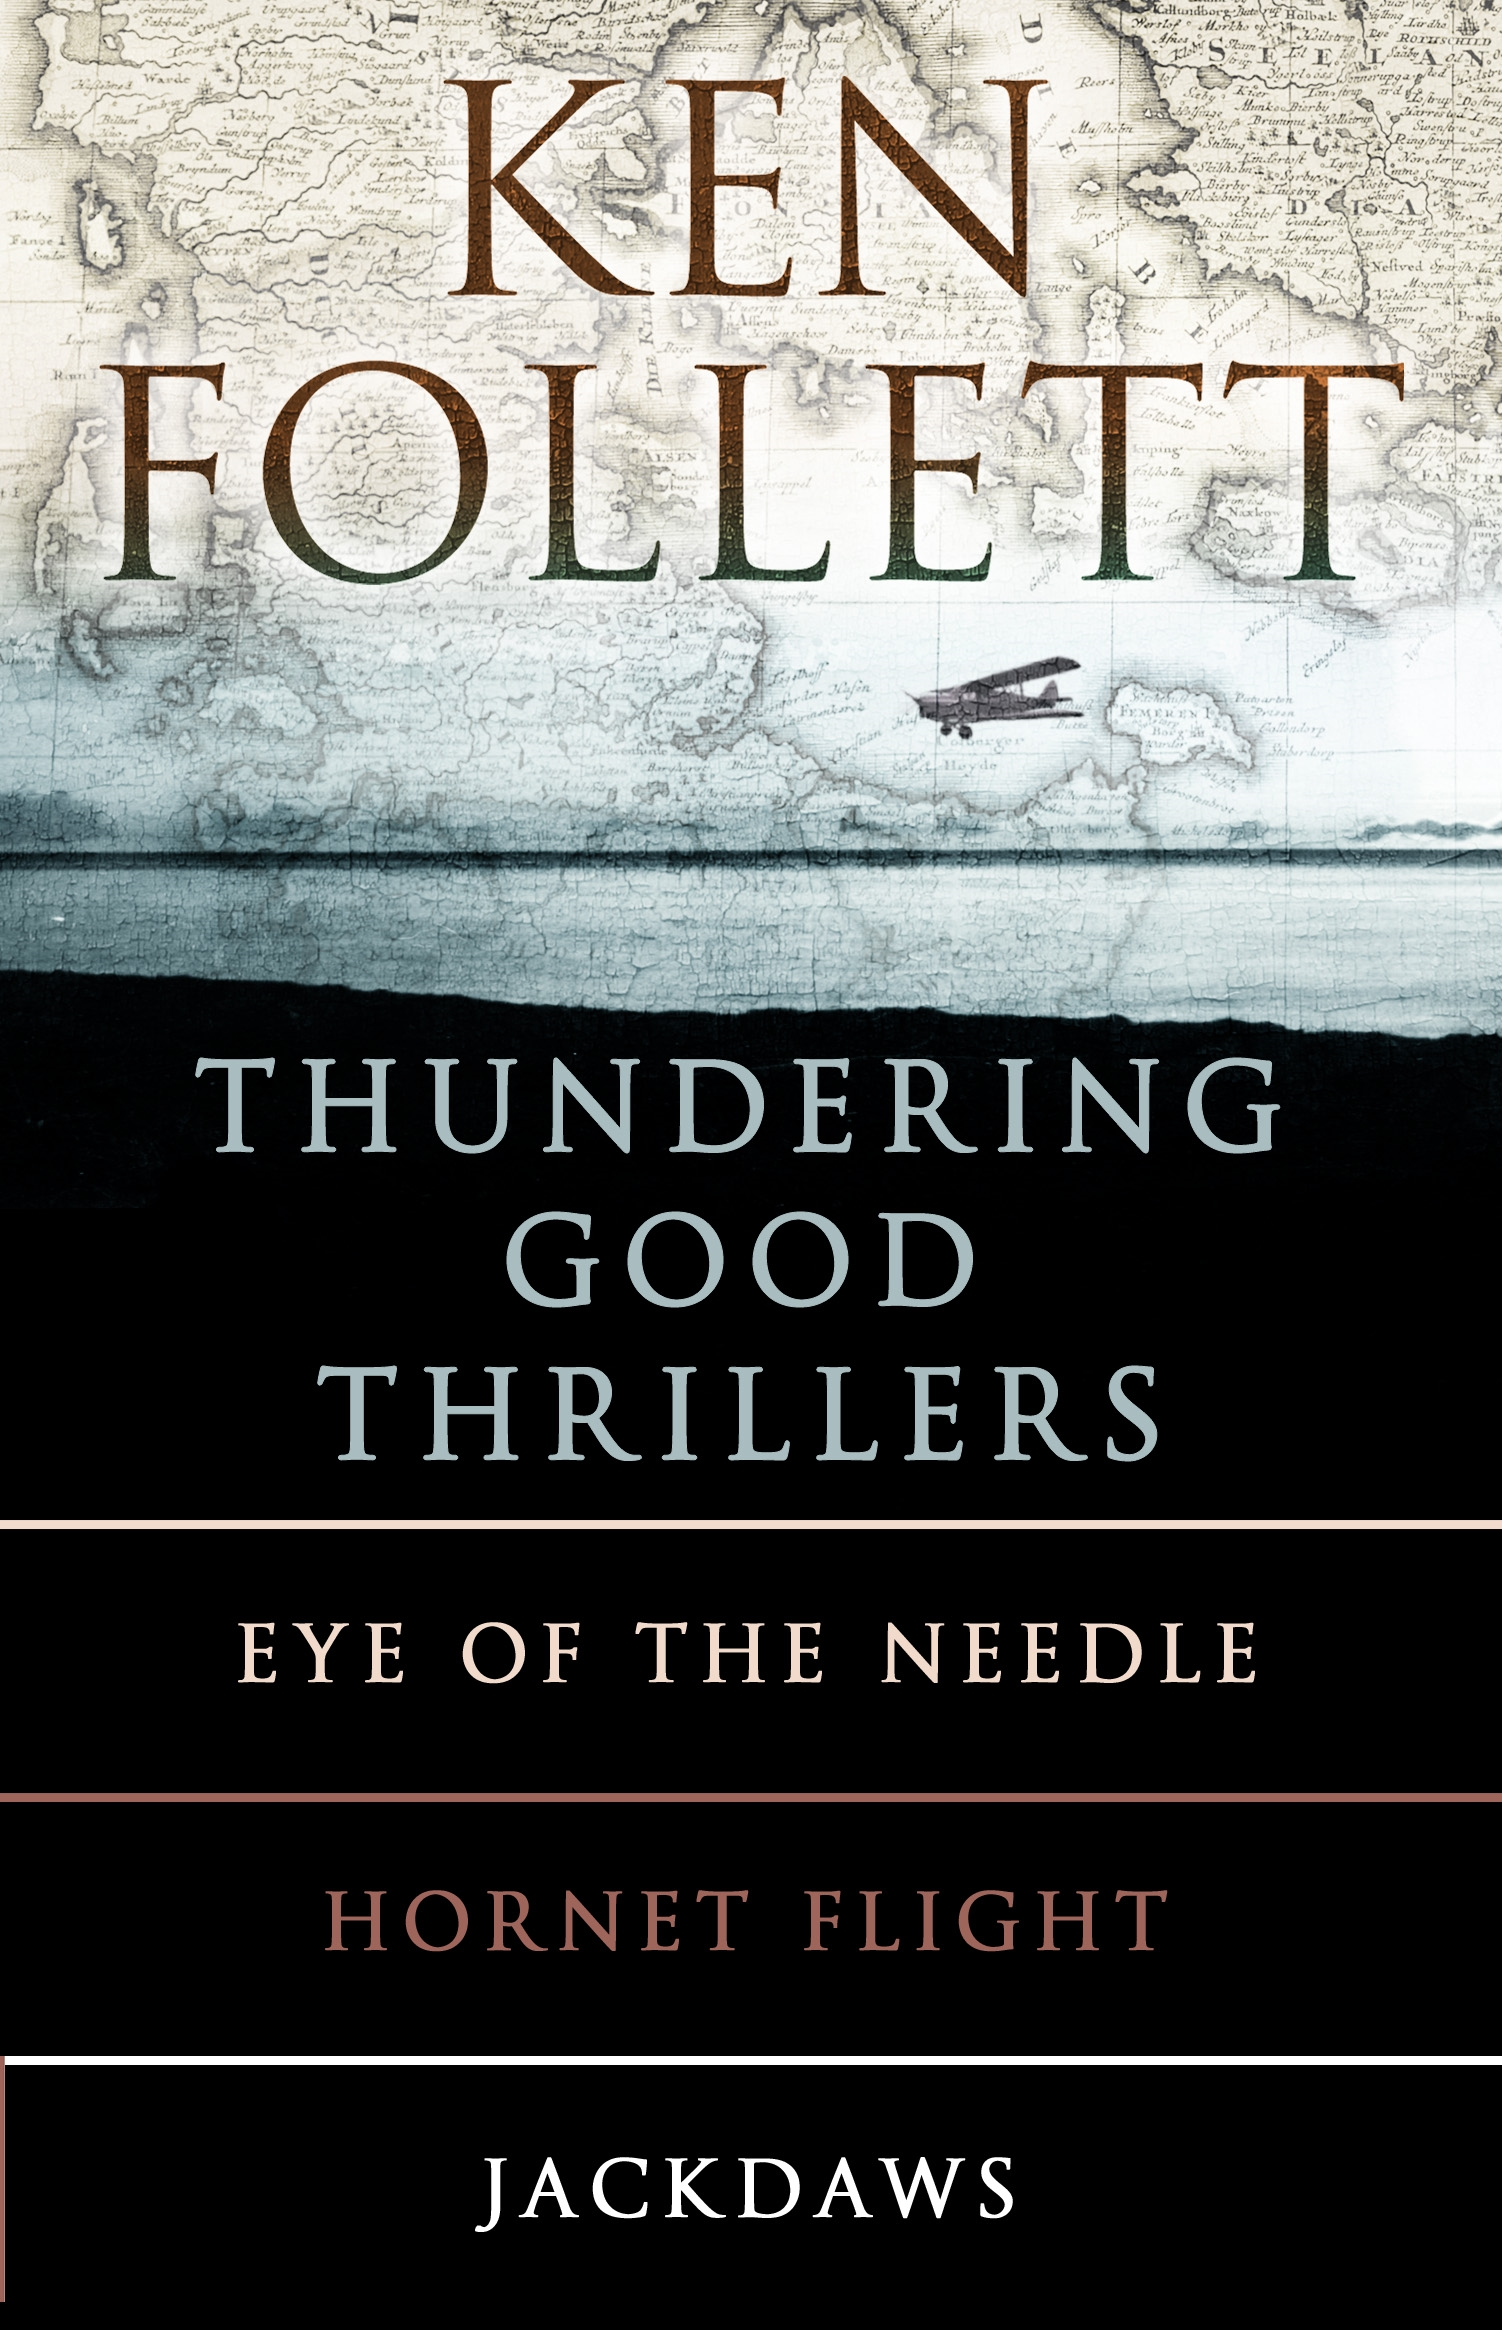 Ken Follett's Thundering Good Thrillers